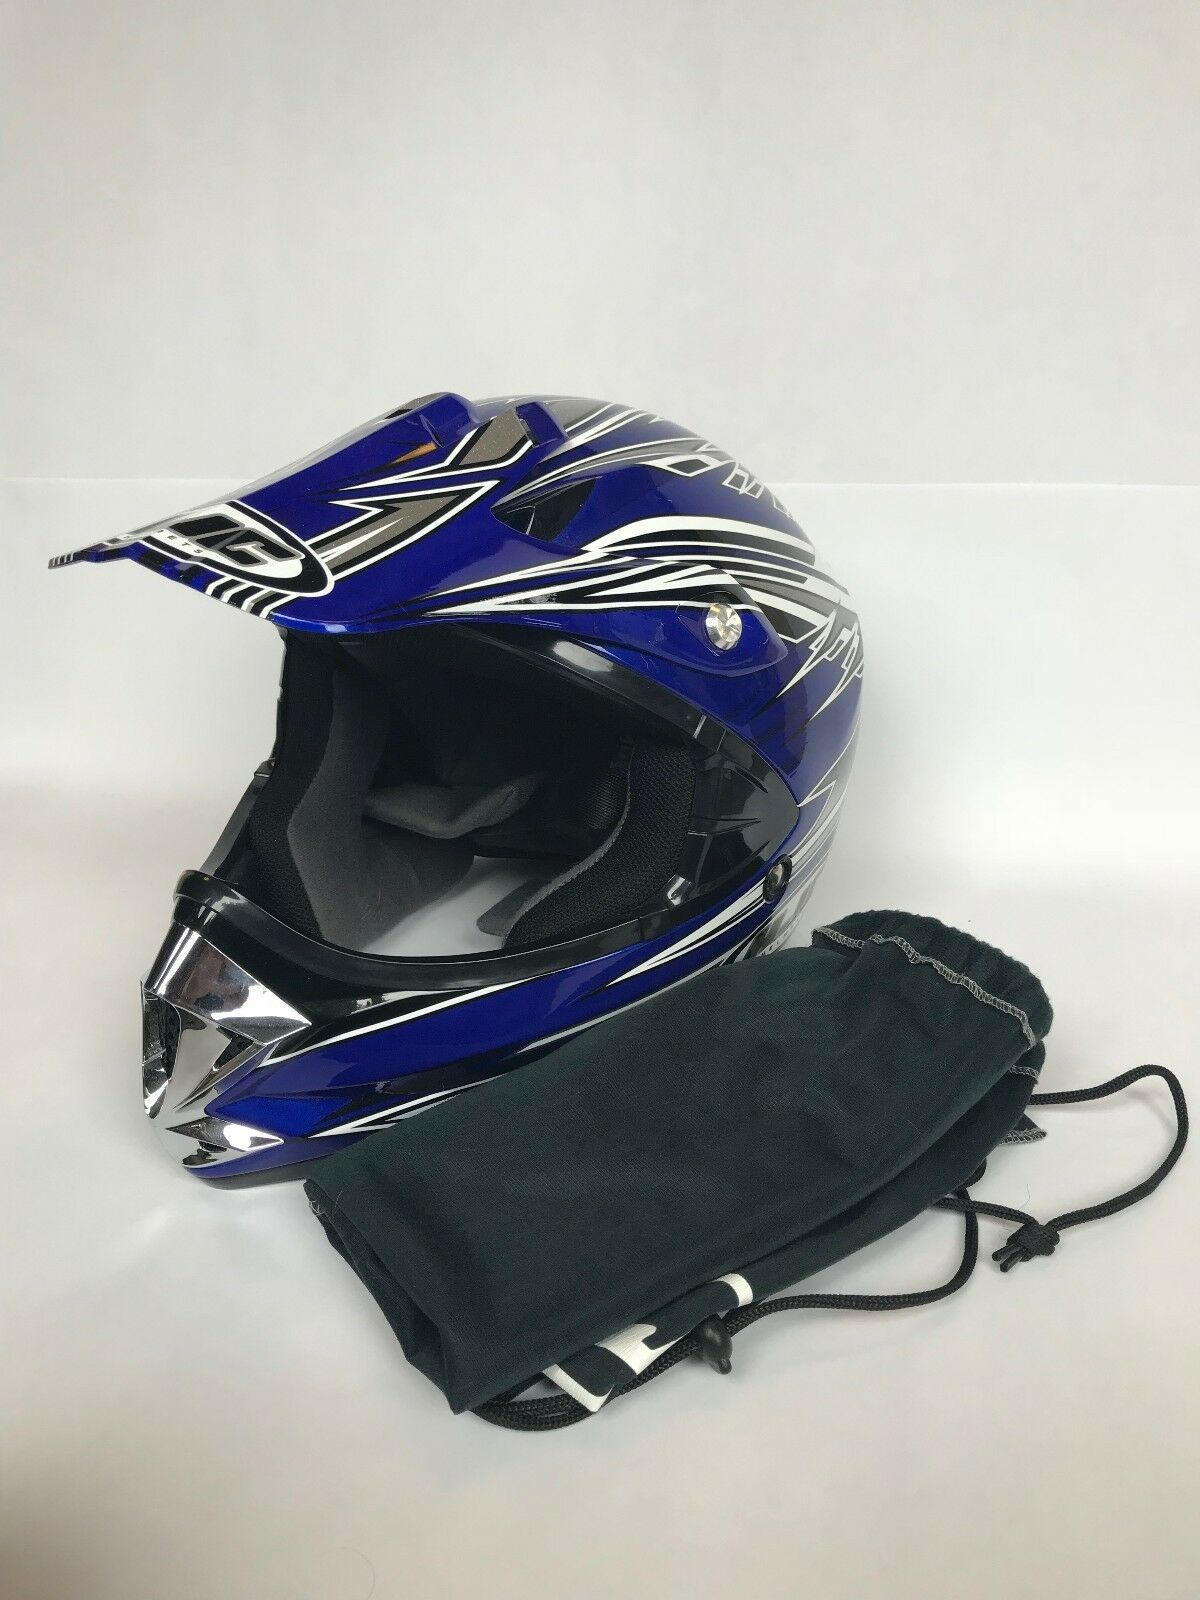 Motorcycle 4-Wheeler Helmet YOUTH MEDIUM (HJC Arena CL-X5Y)